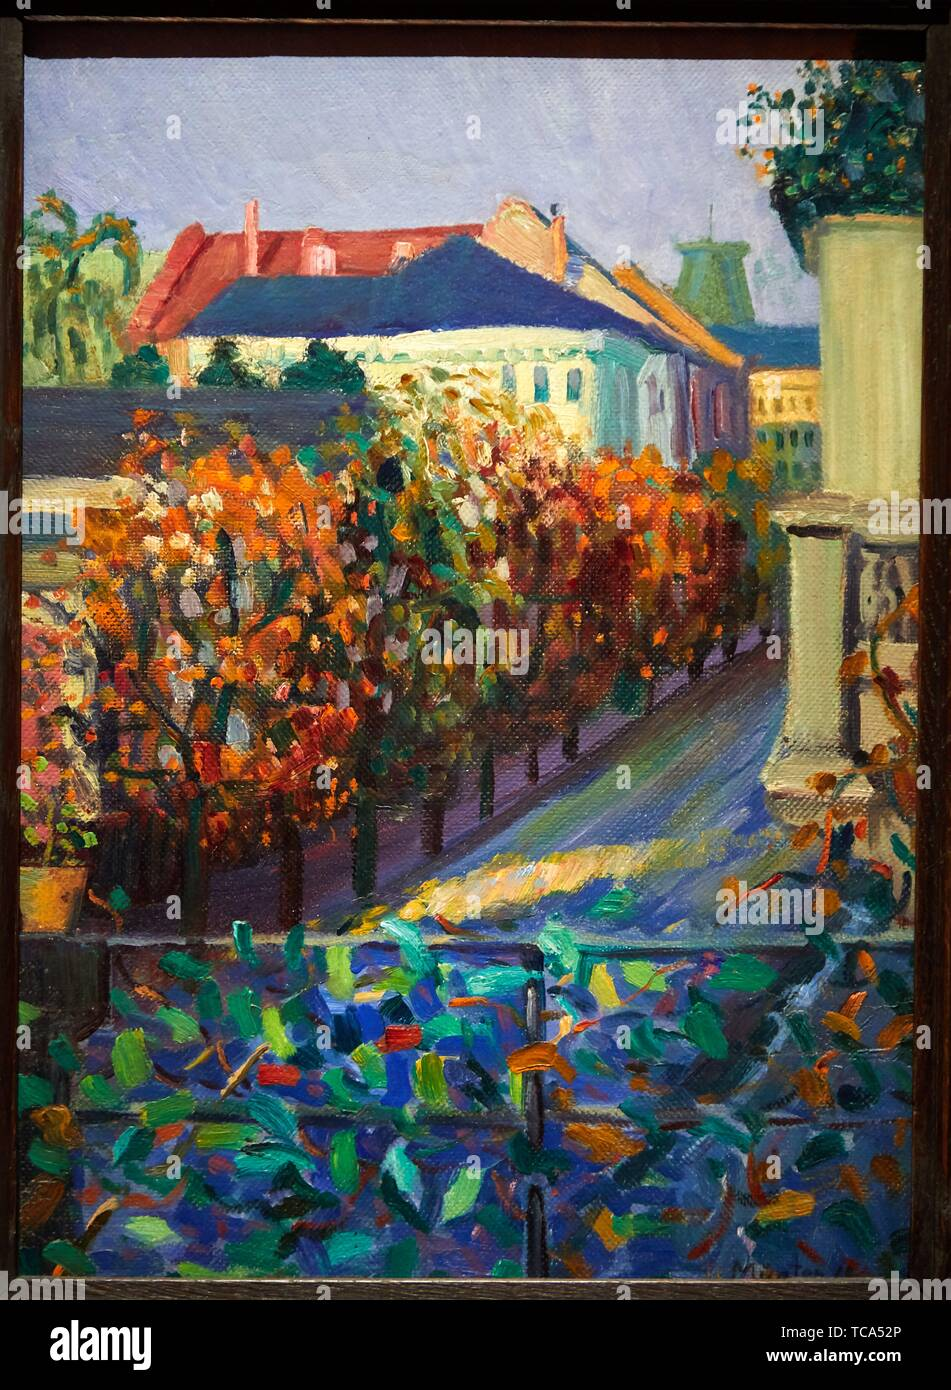 '''View from her Brother's House in Bonn'', 1908, Gabriele Münter, Thyssen Bornemisza Museum, Madrid, Spain, Europe - Stock Image